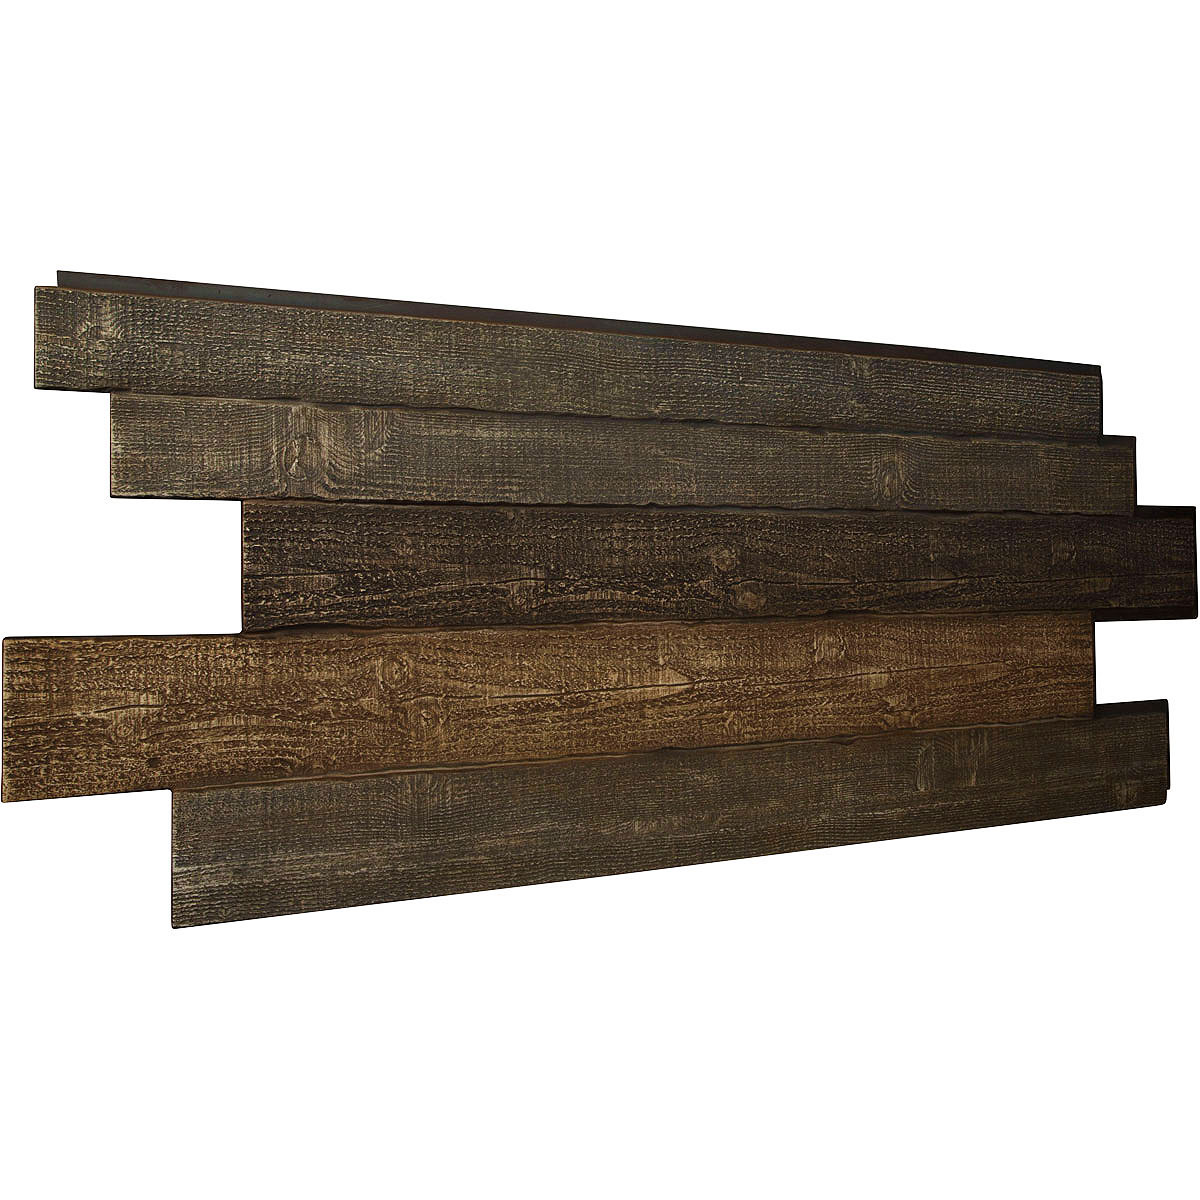 Ekena millwork pn913 98 inch w x 38 inch h x 1 inch d rough for Faux wood siding